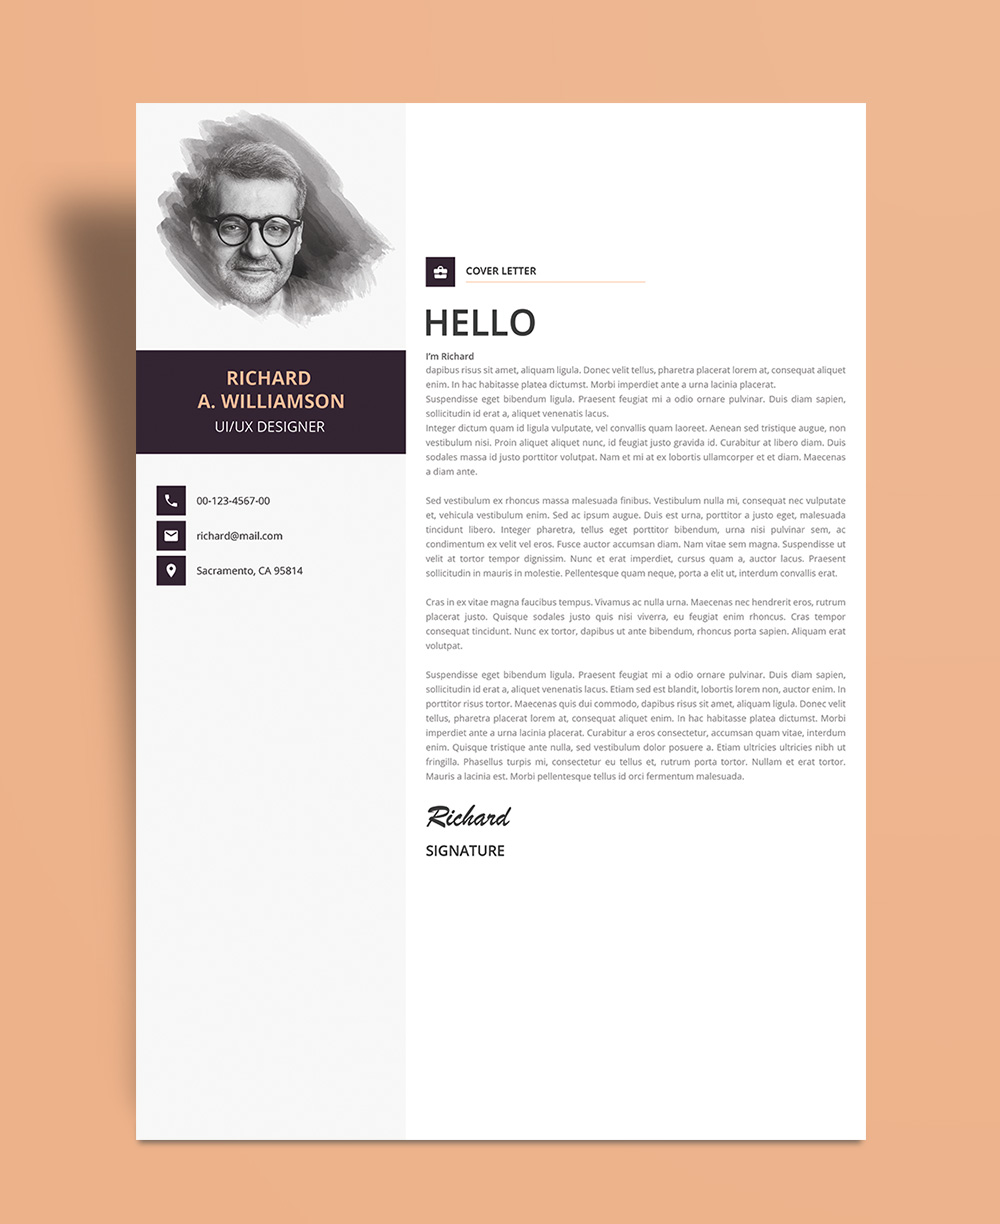 Writing A Cover Letter Design: Creative Professional Resume (CV) Design Template With